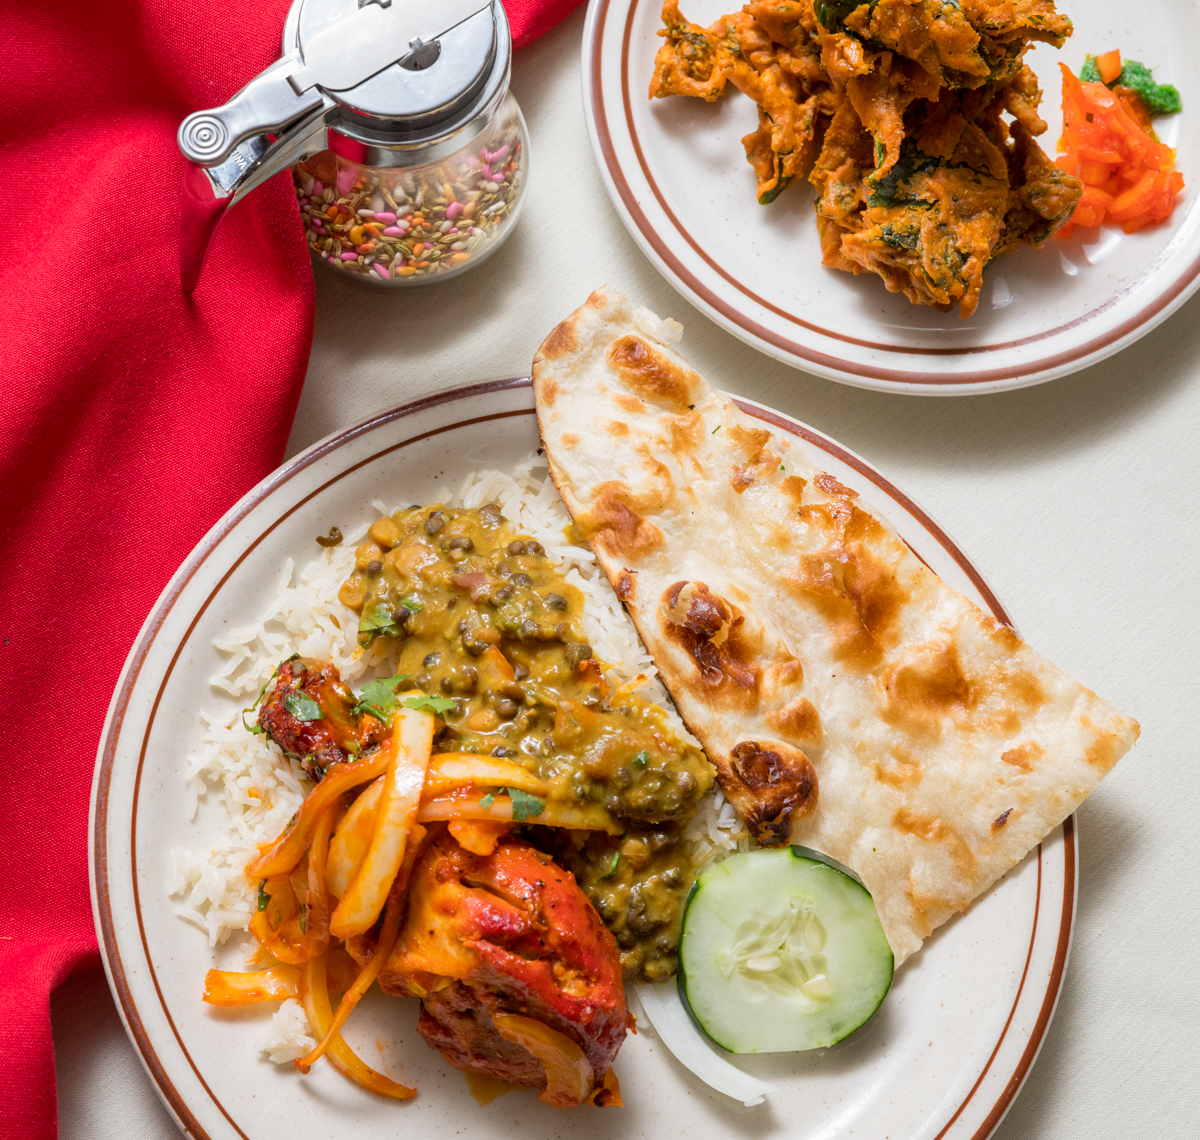 Palak pakora, curry chicken, nan, and fennel sews / Image: Marlene Rounds // Published: 10.25.18